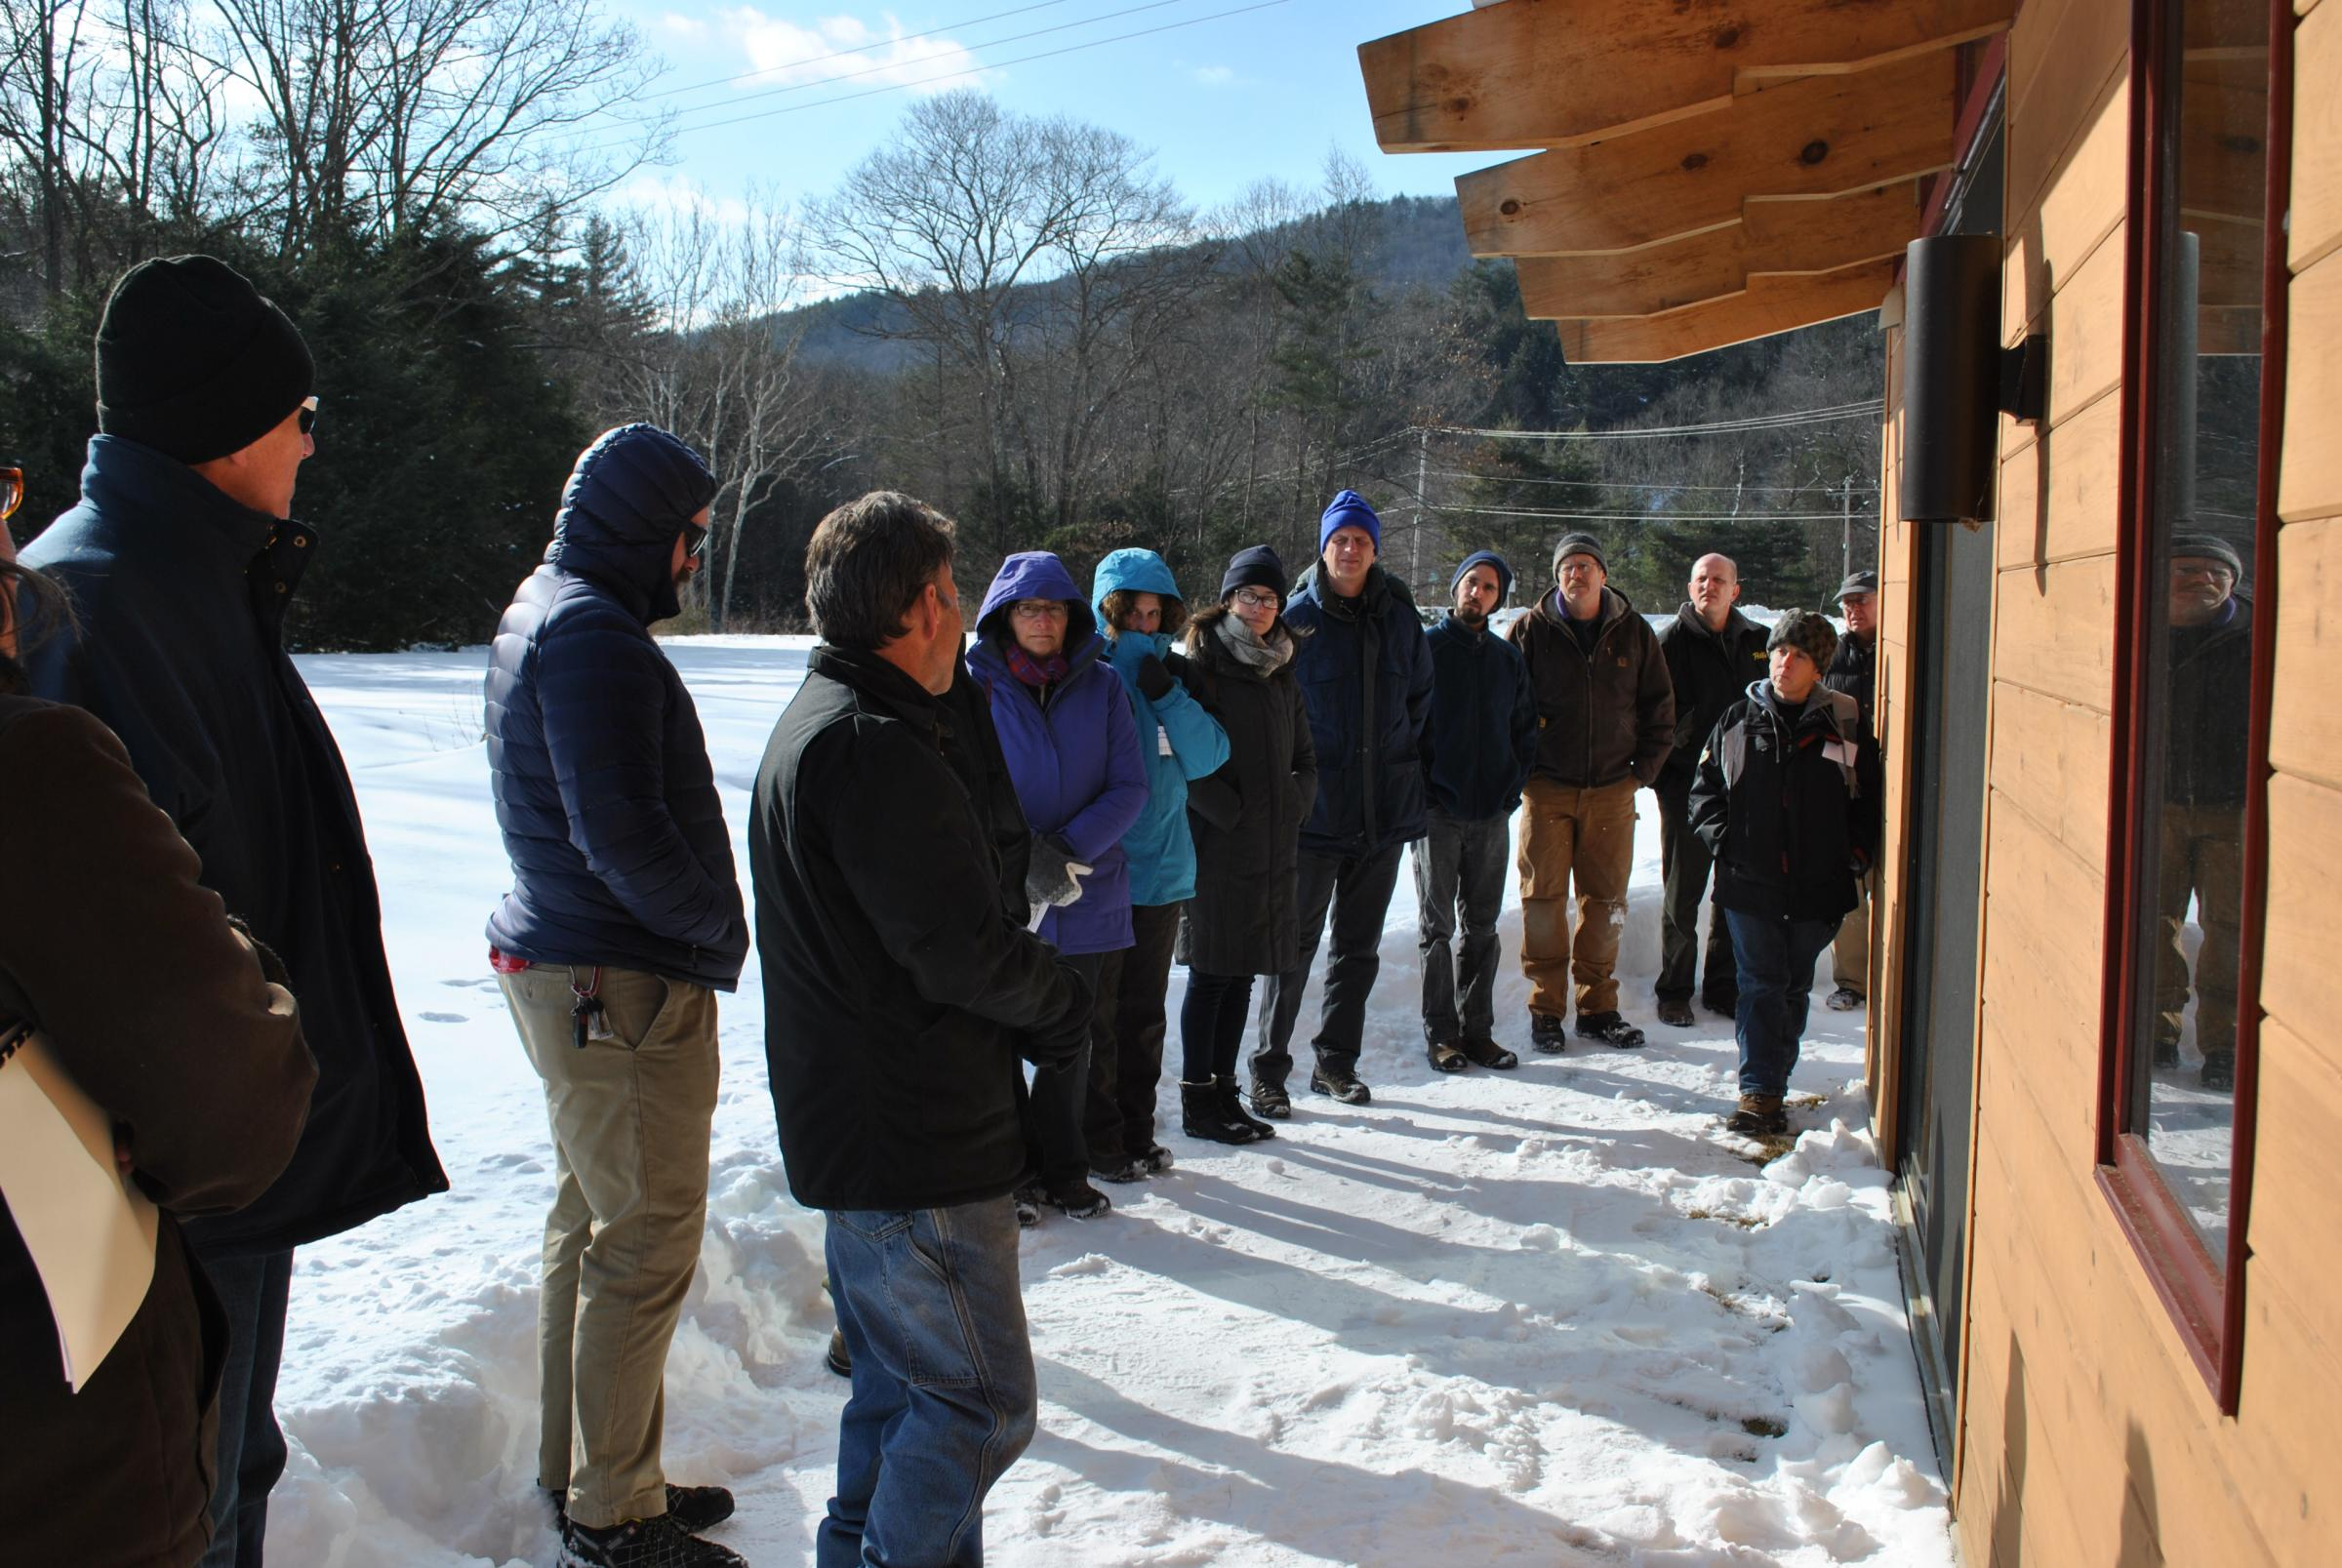 Group standing in a row next to a building during a BuildingEnergy Pro Tour (Caption: BuildingEnergy Pro Tour participants stand next to a building in Colrain, Mass. on Feb. 6, 2015.)